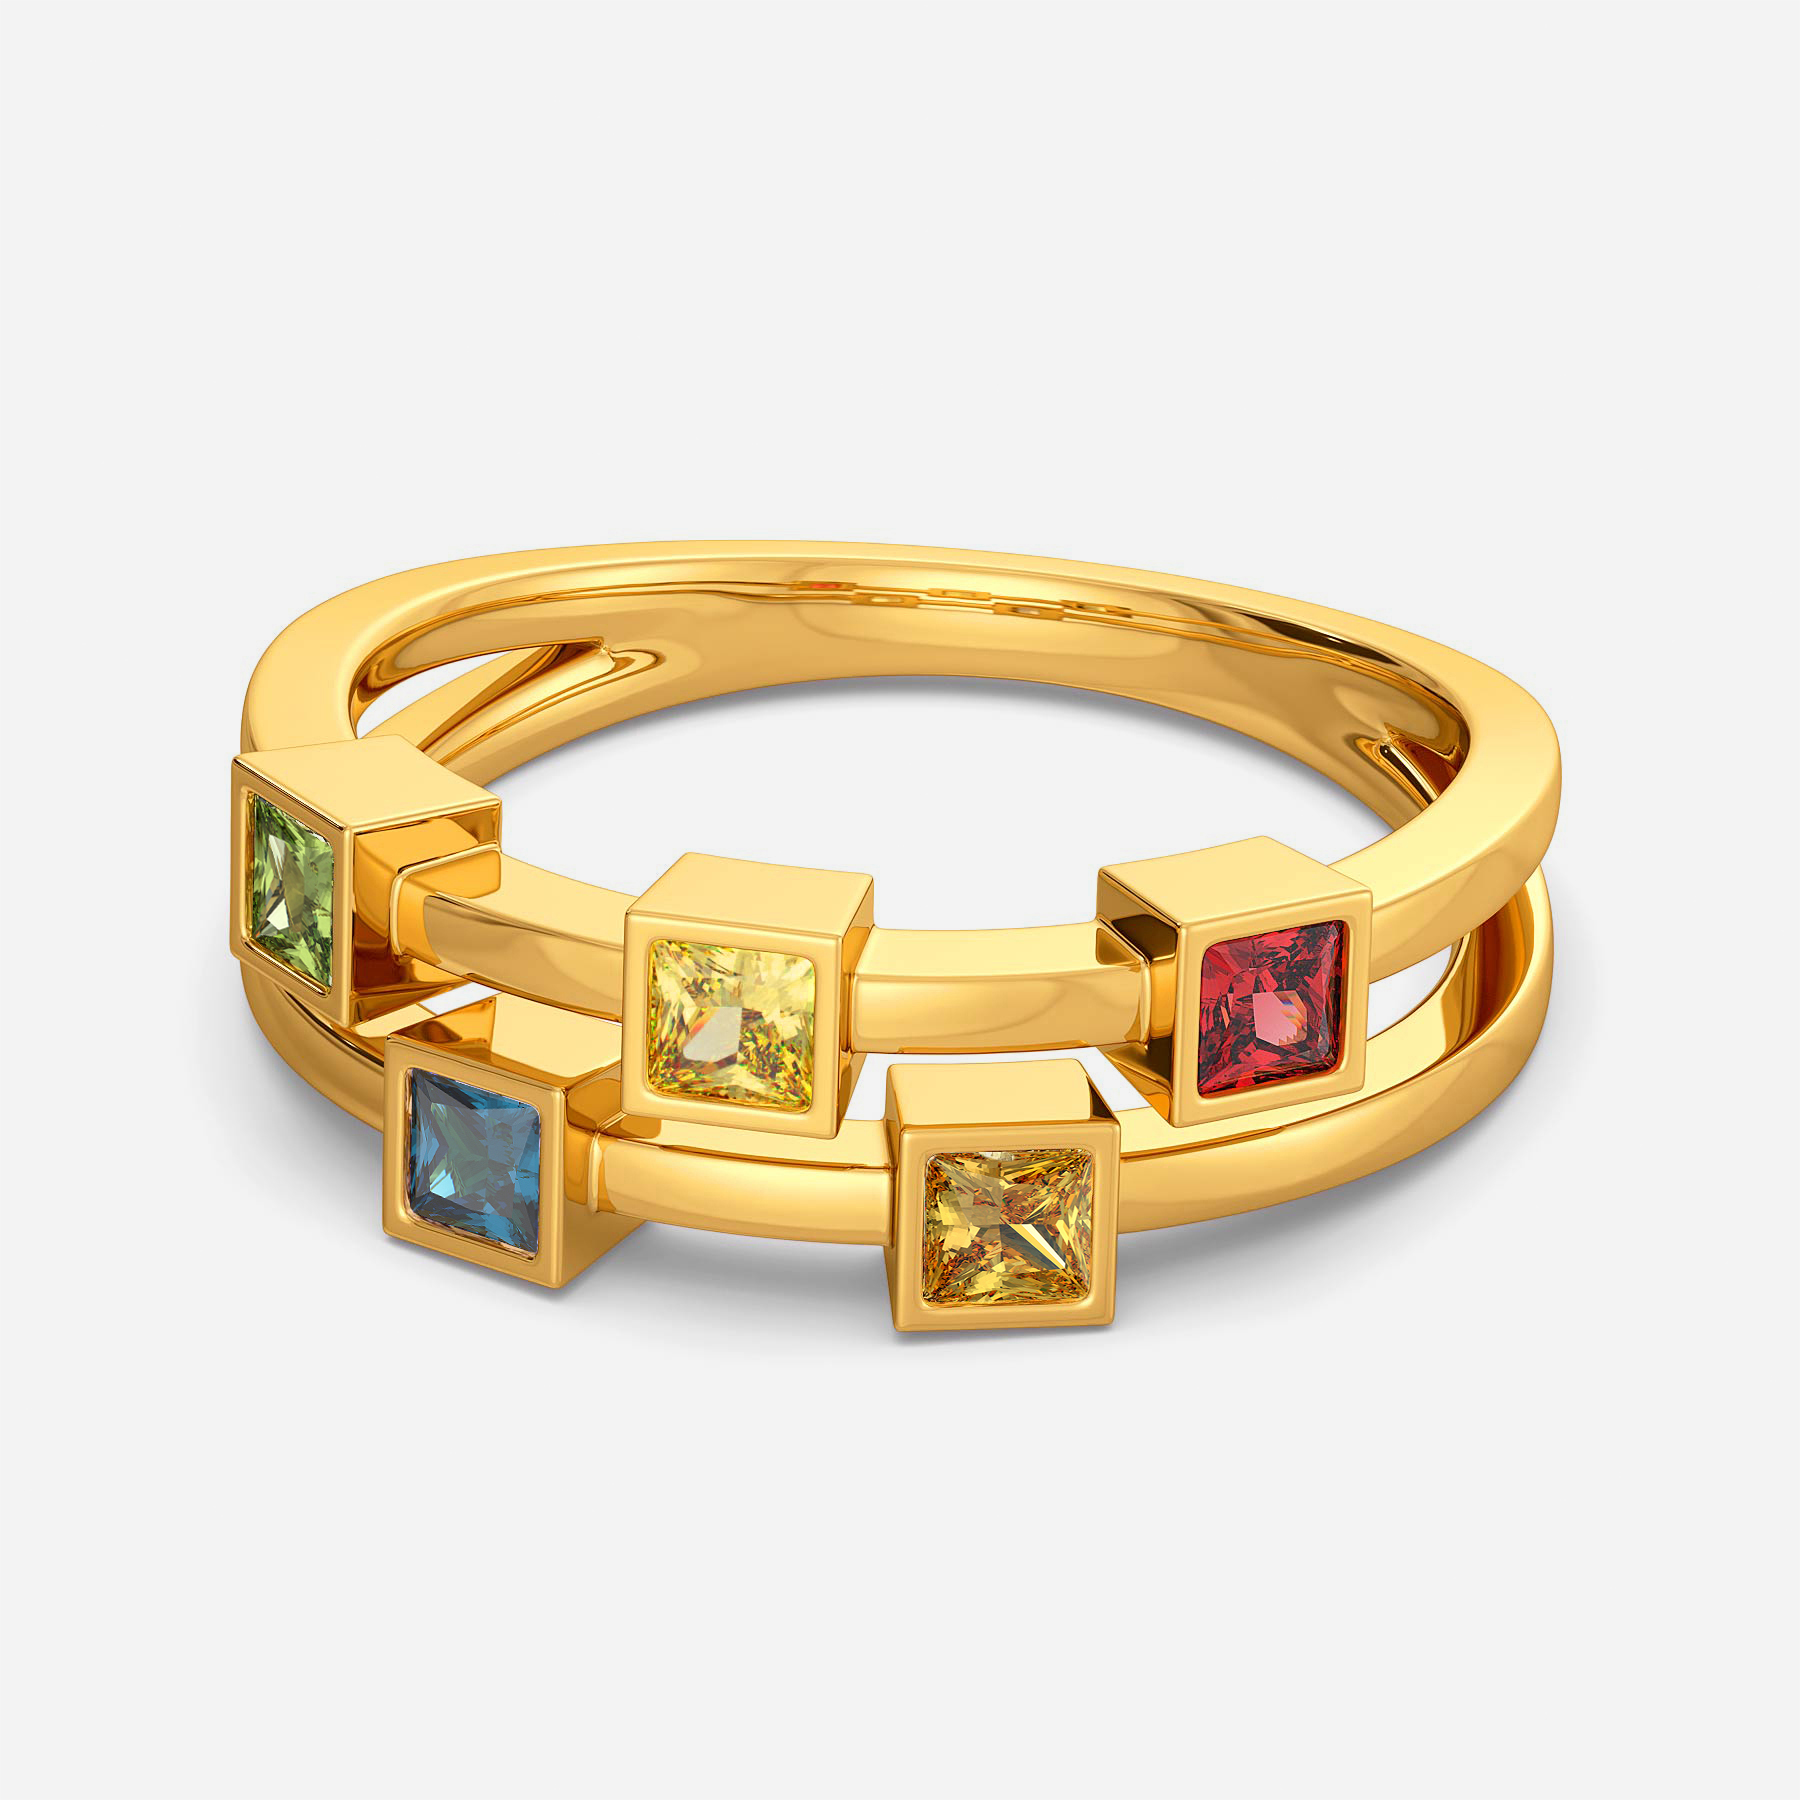 Colour Compliments Gemstone Rings